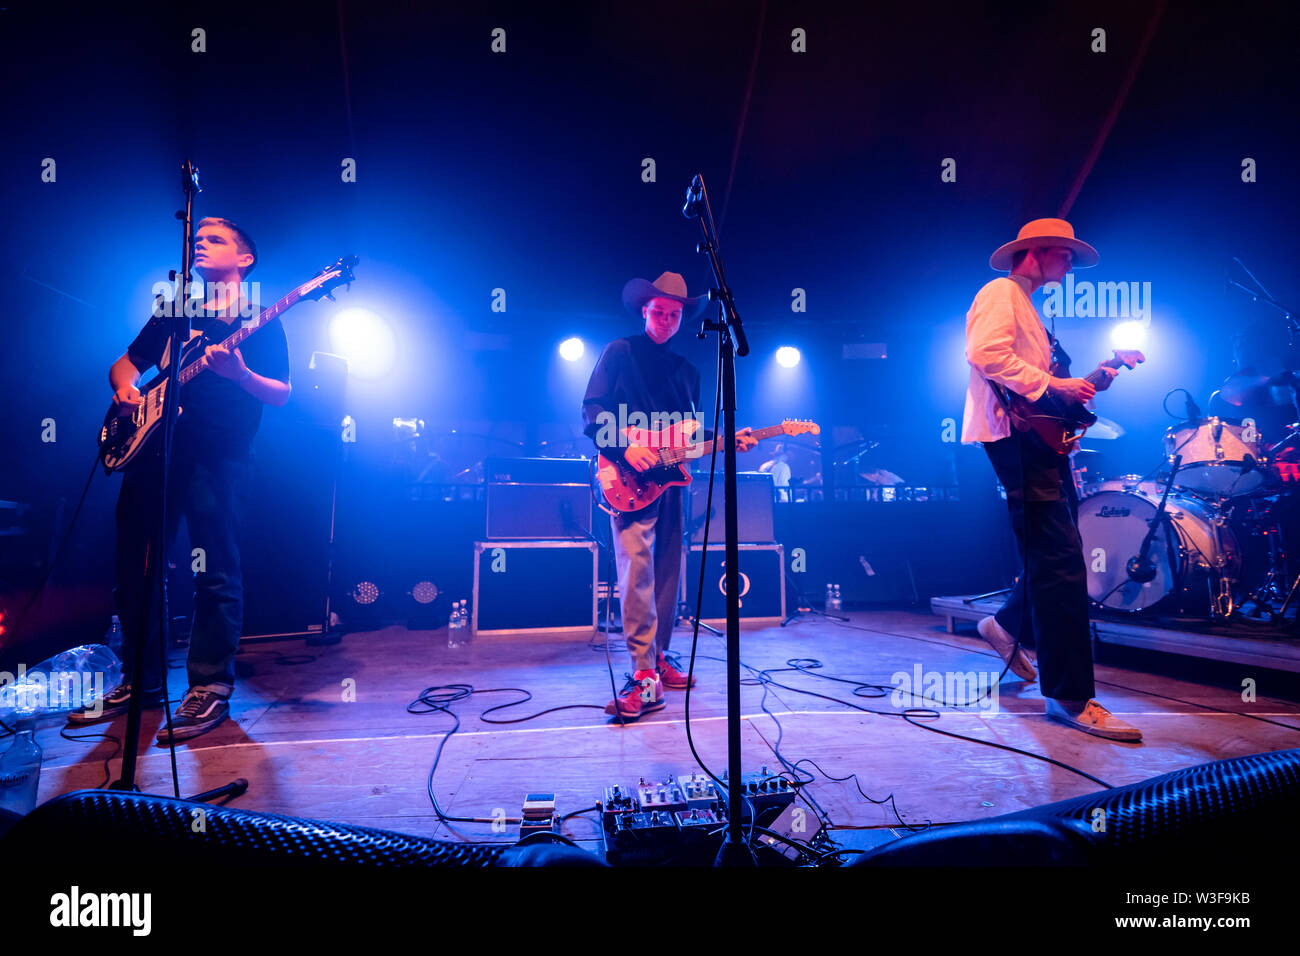 Bergen, Norway - June 15th, 2019. The British band Black Midi performs a live concert during the Norwegian music festival Bergenfest 2019 in Bergen. Here singer and guitarist Geordie Greep is seen live on stage with bass player bass player Cameron Picton (L) and guitarist Matt Kwasniewski-Kelvin (R). (Photo credit: Gonzales Photo - Jarle H. Moe). - Stock Image